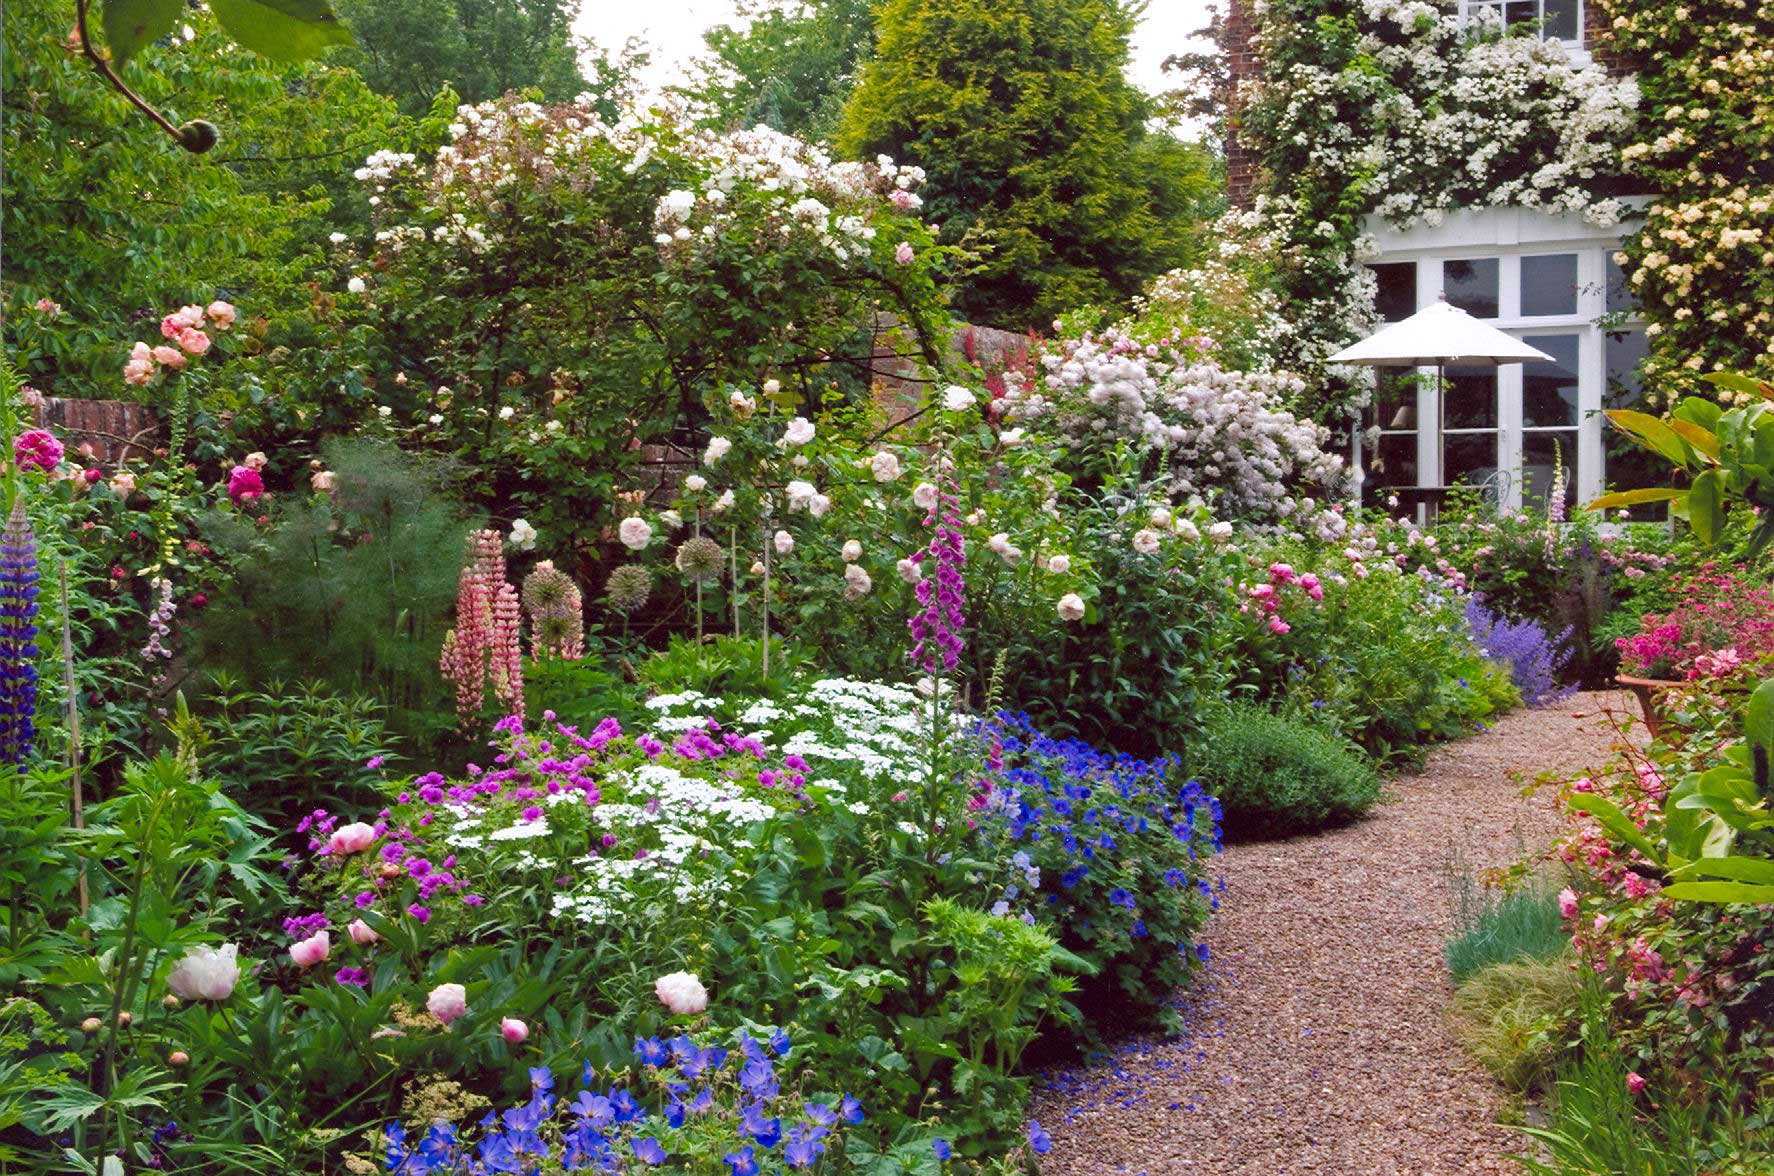 Our Top NGS Garden Picks To Visit This Summer - The ...